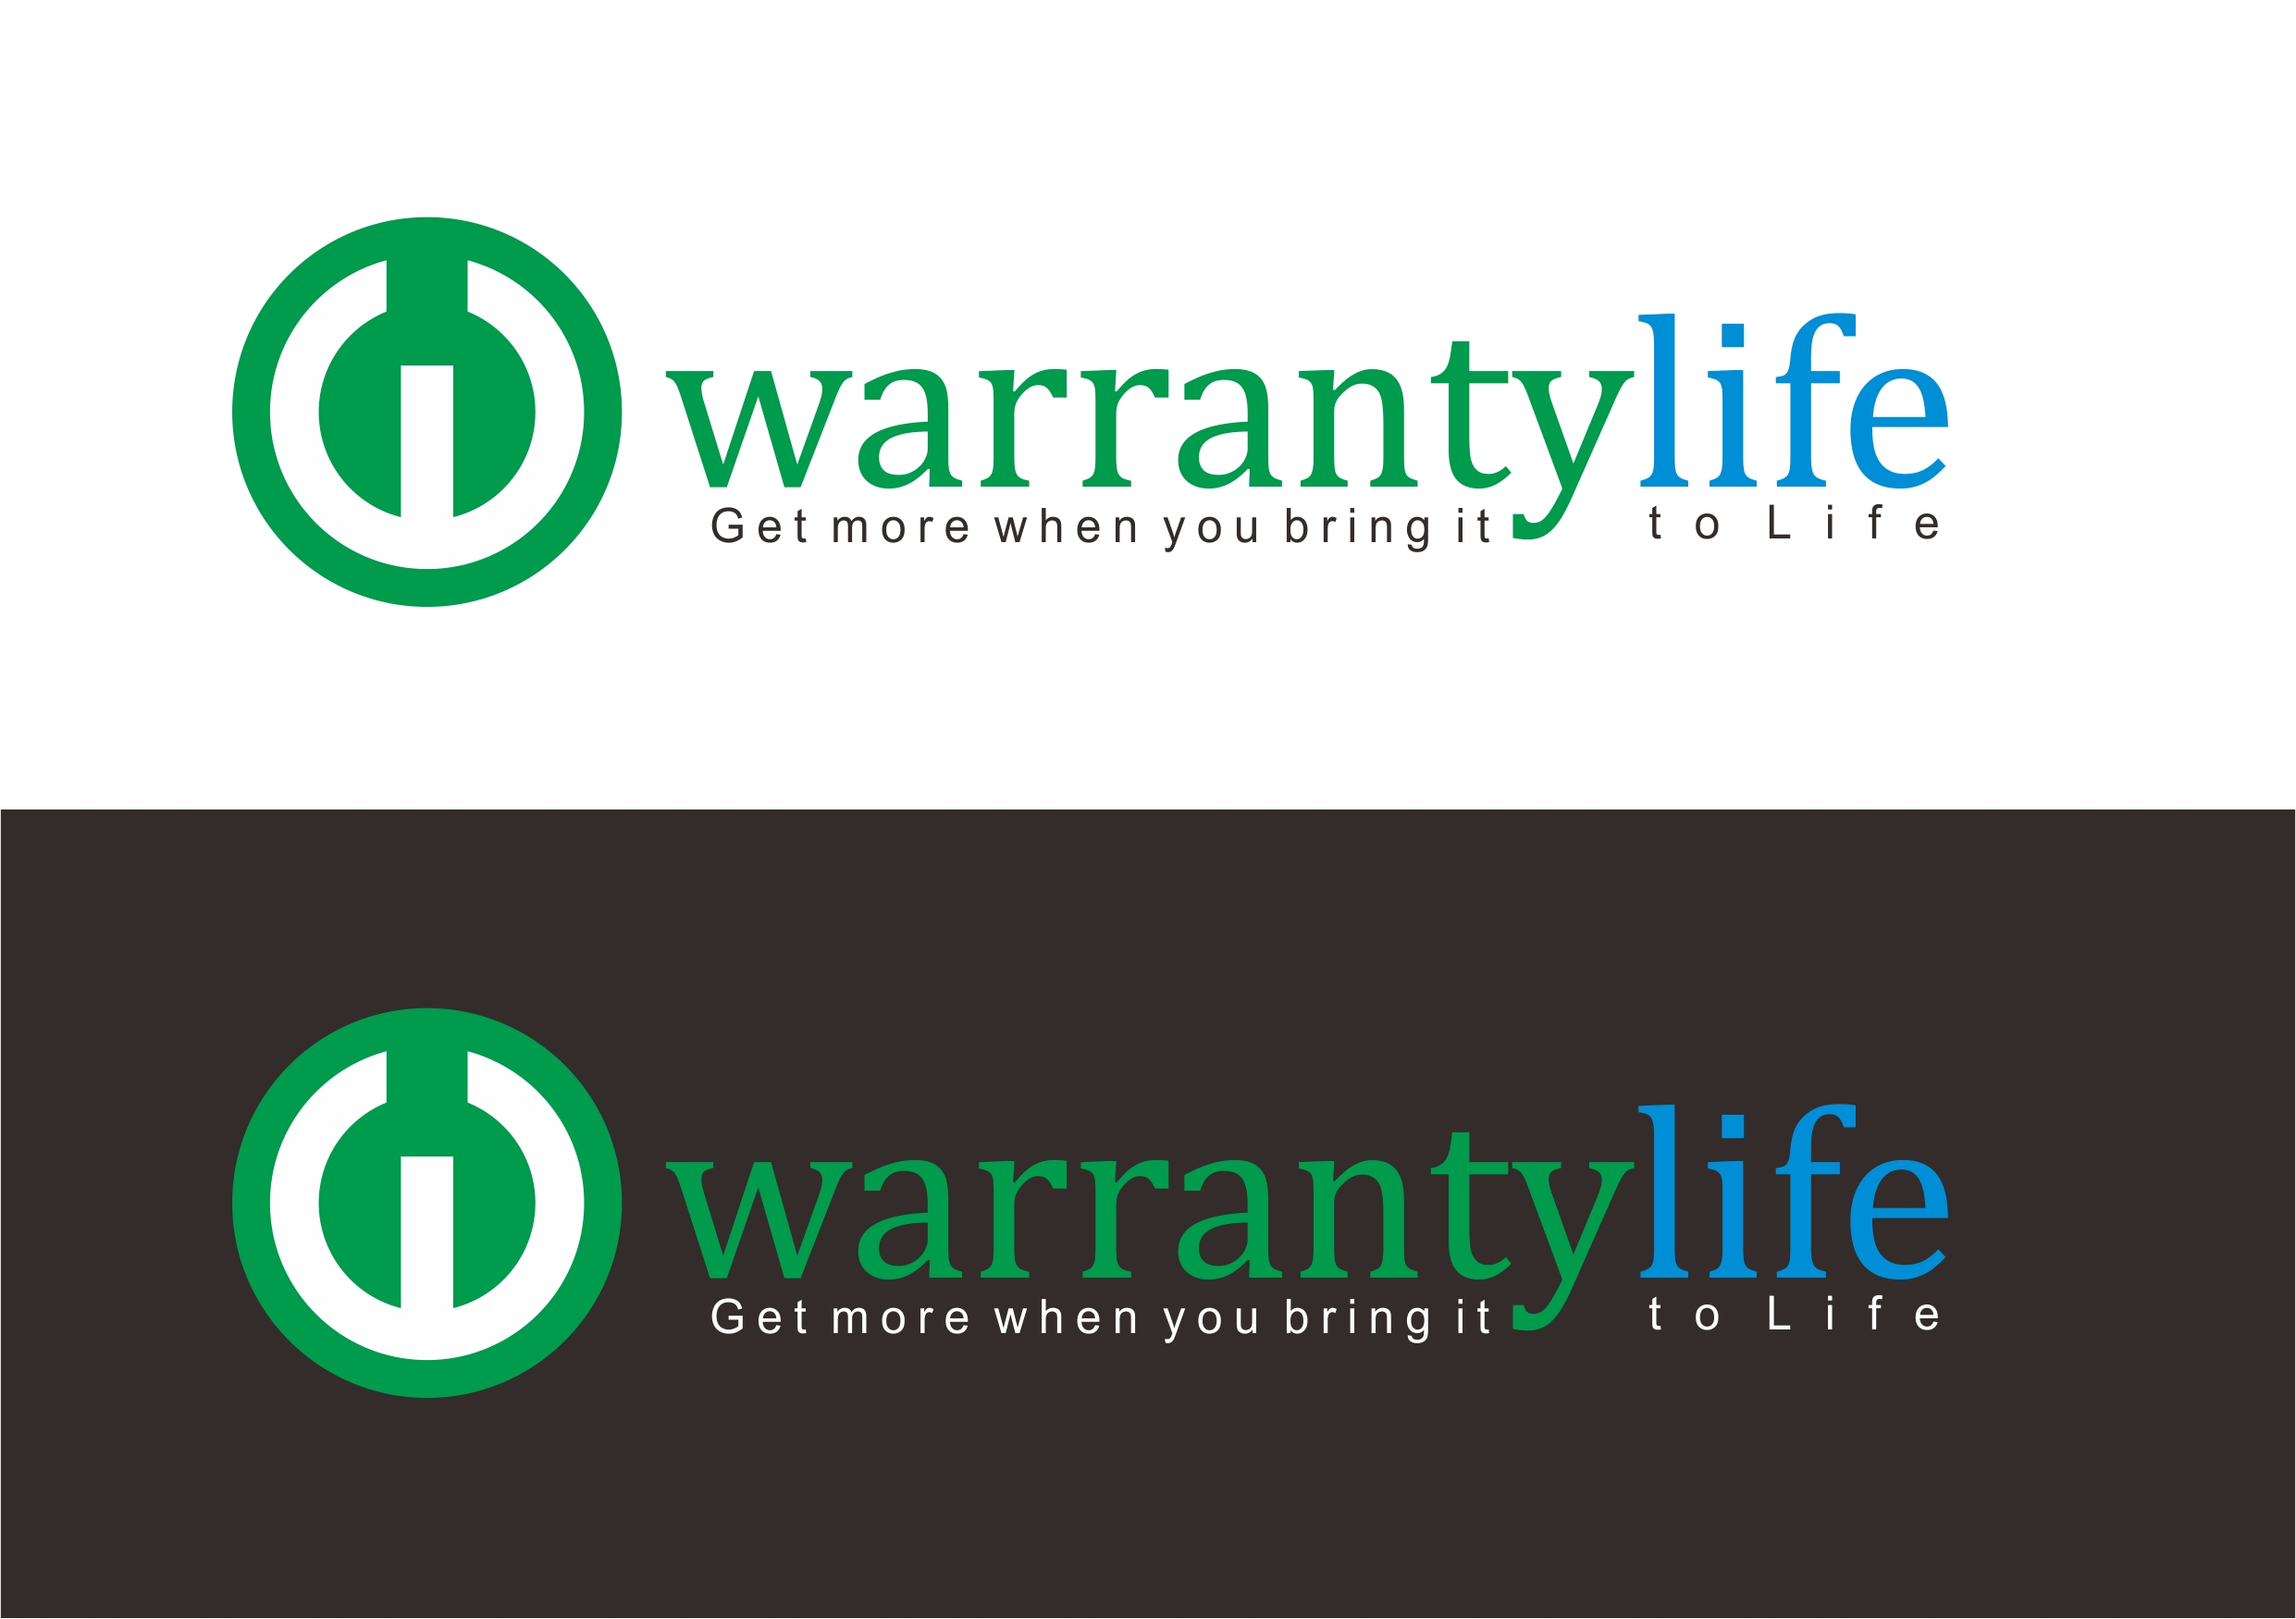 Logo Design by Teguh Mudjianto - Entry No. 18 in the Logo Design Contest WarrantyLife Logo Design.